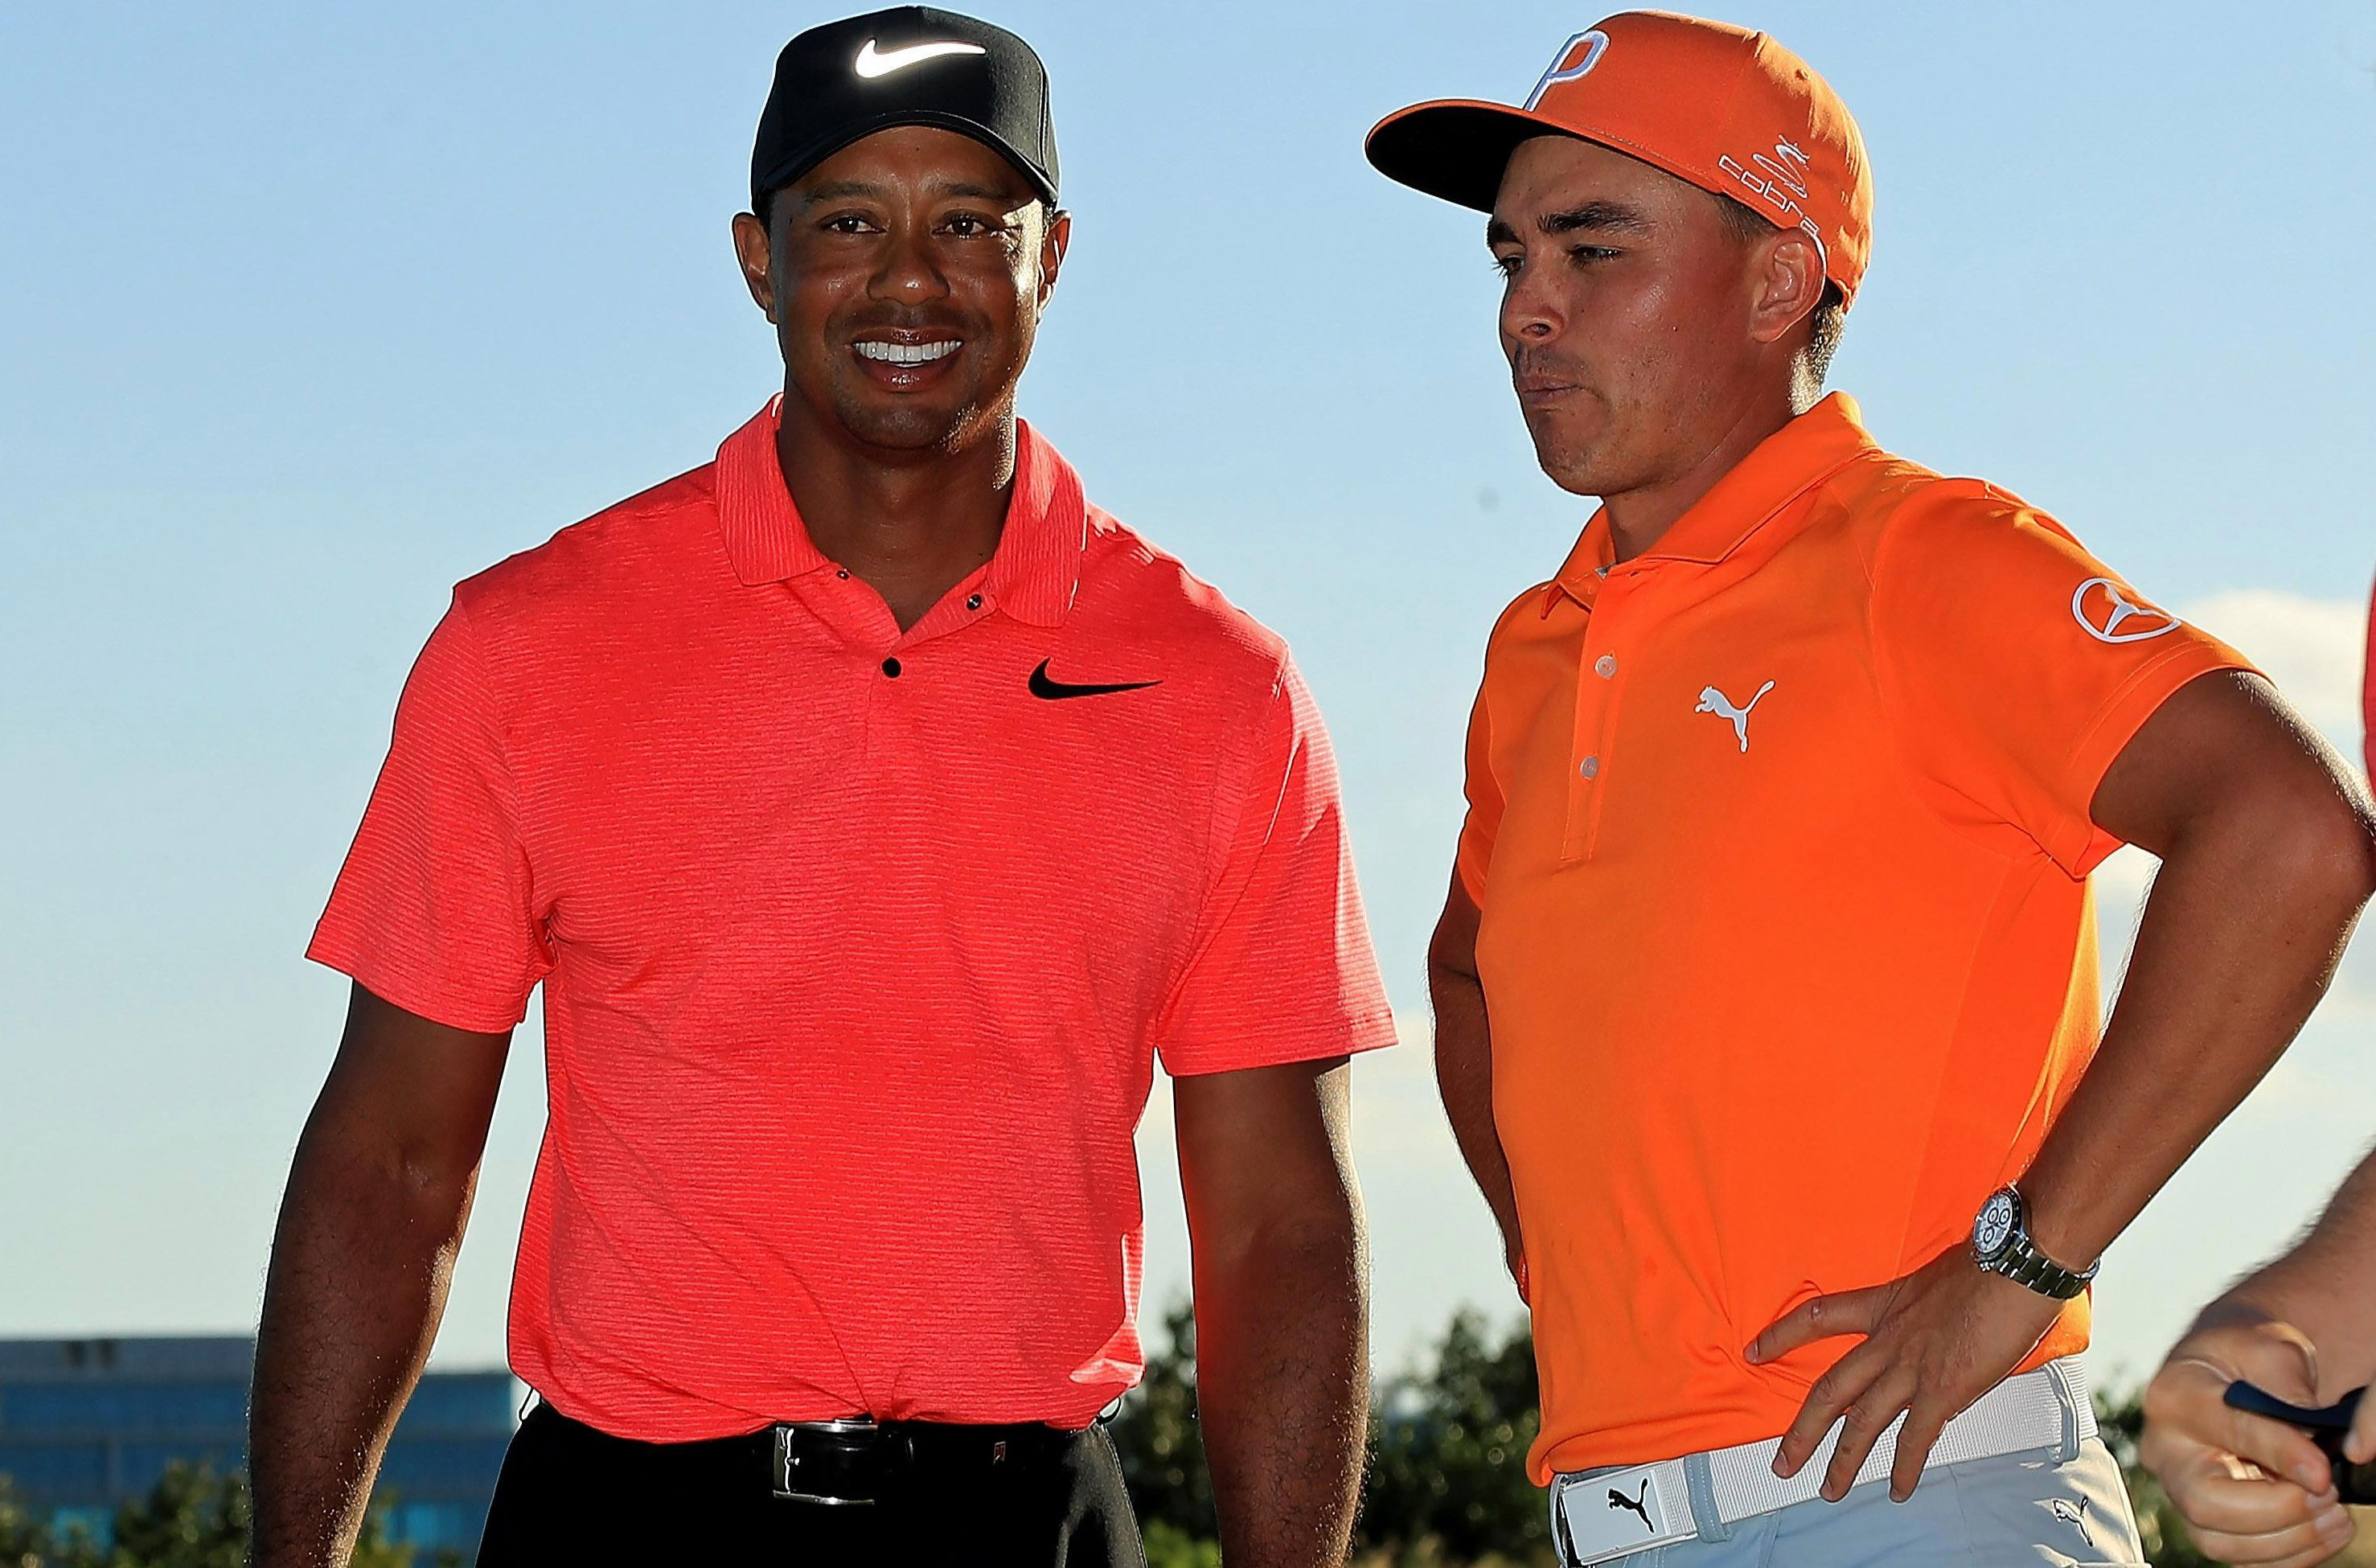 Rickie Fowler was victorious at the Hero World Challenge after a blistering final-round 61